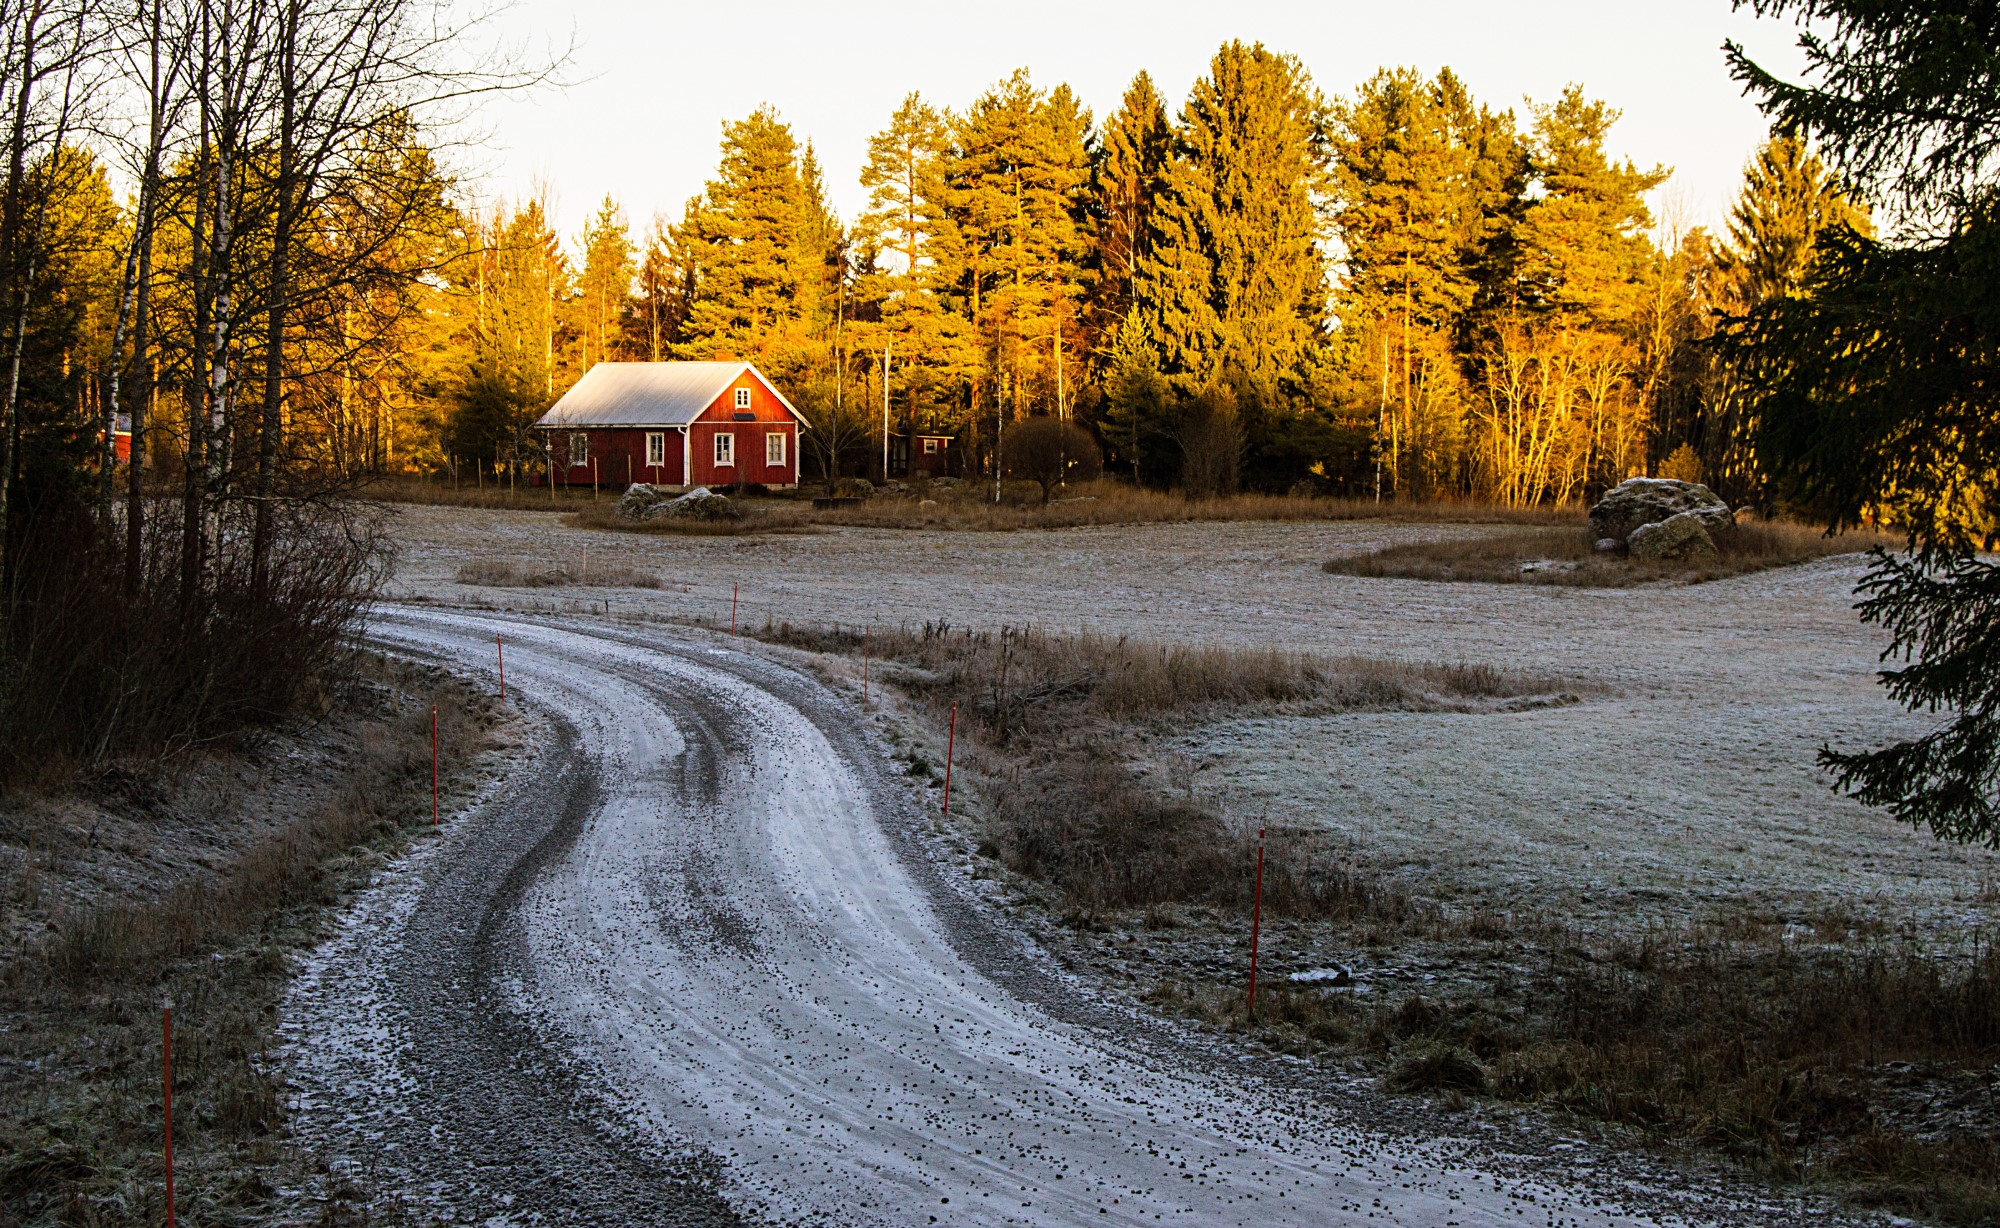 Red farmhouse in the distance, with a snowy path leading toward it